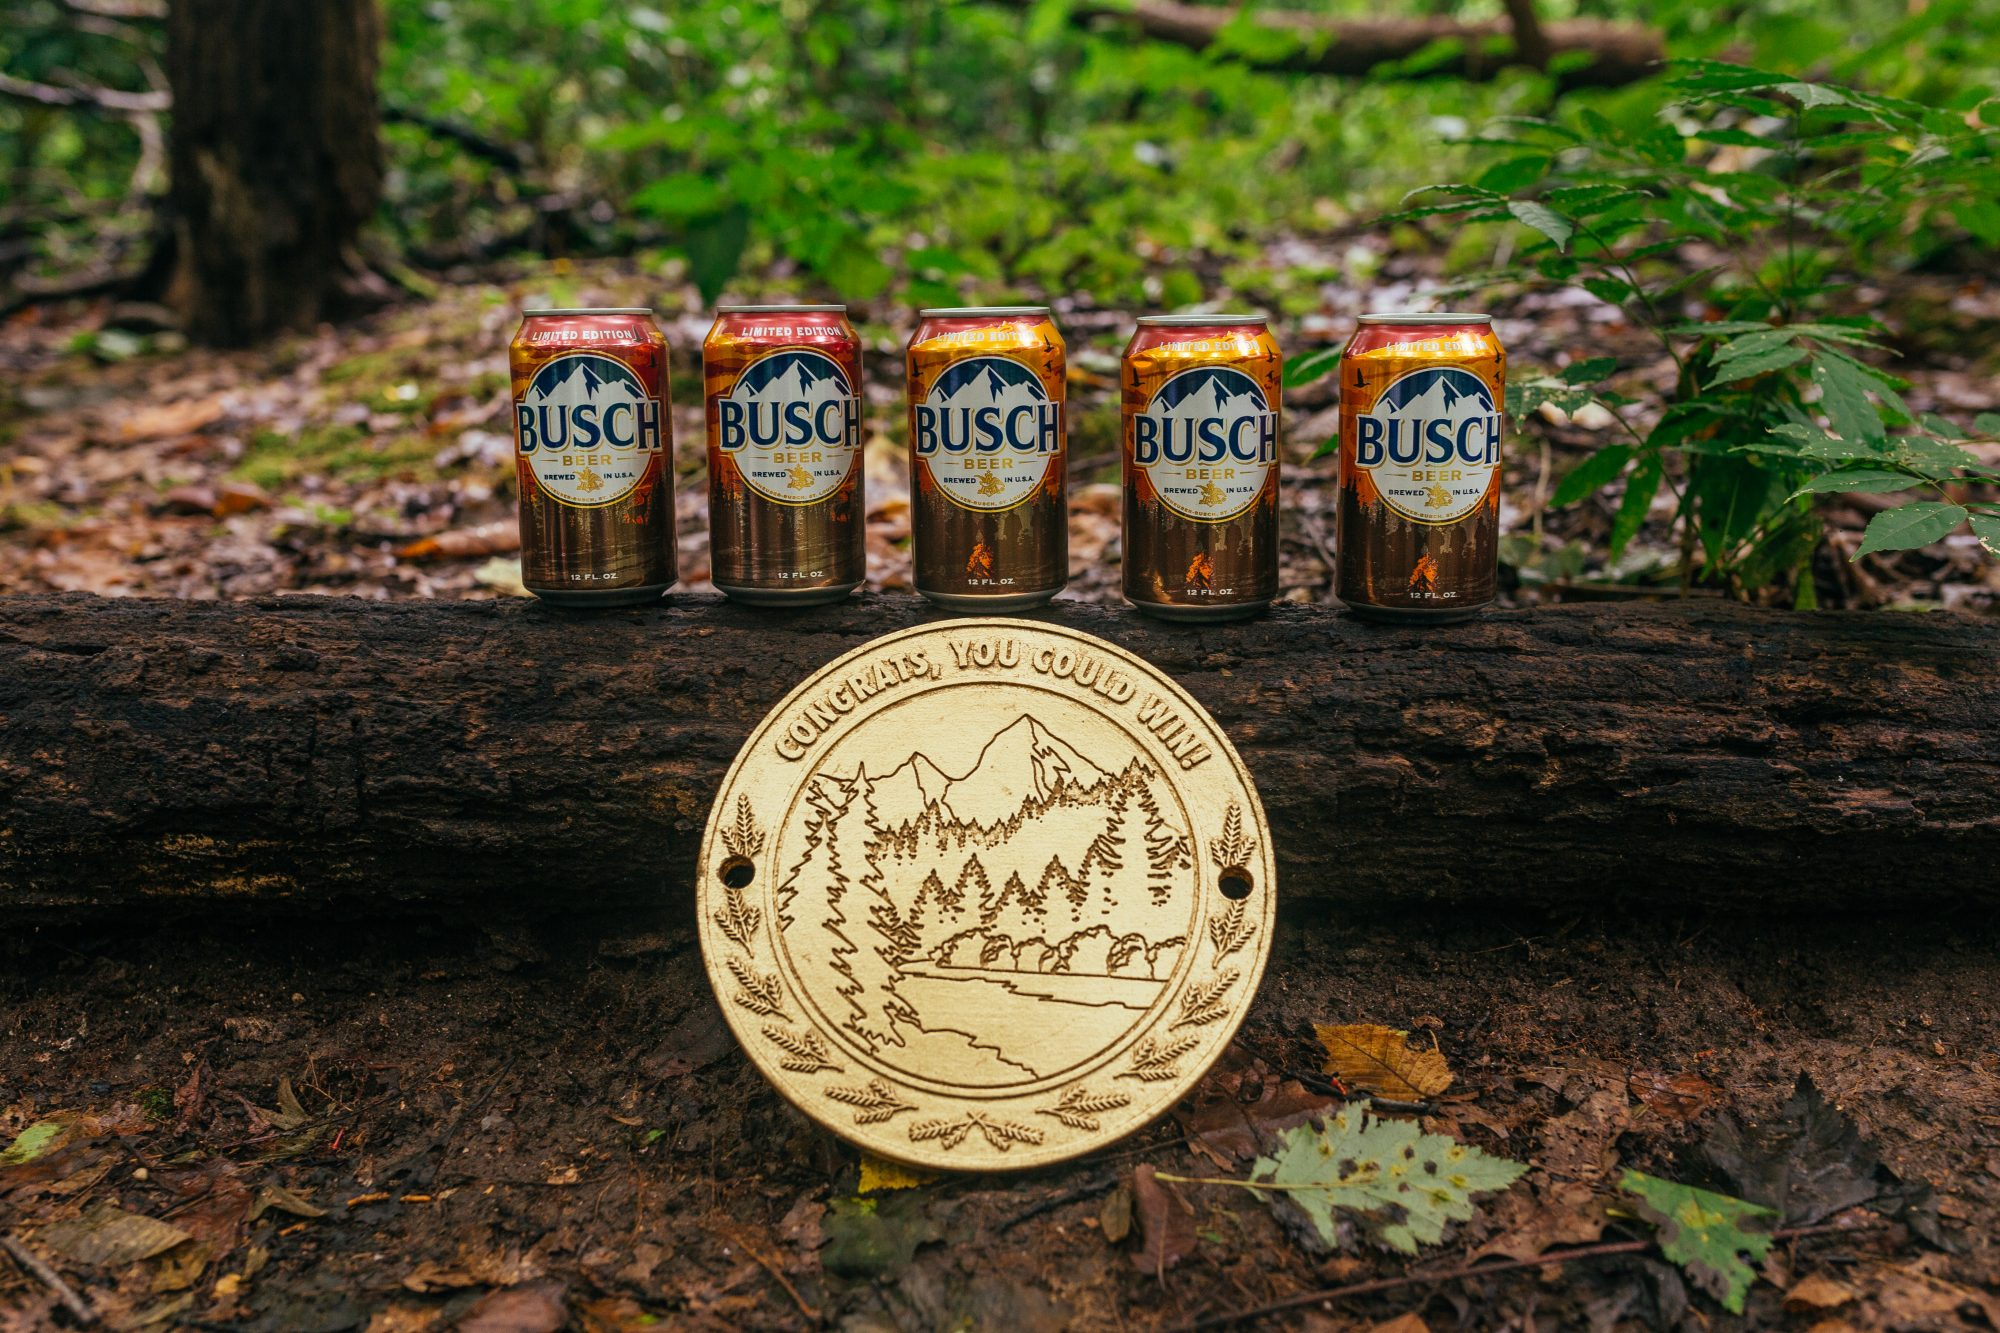 How to Win a Year of Free Beer by Visiting National Forests